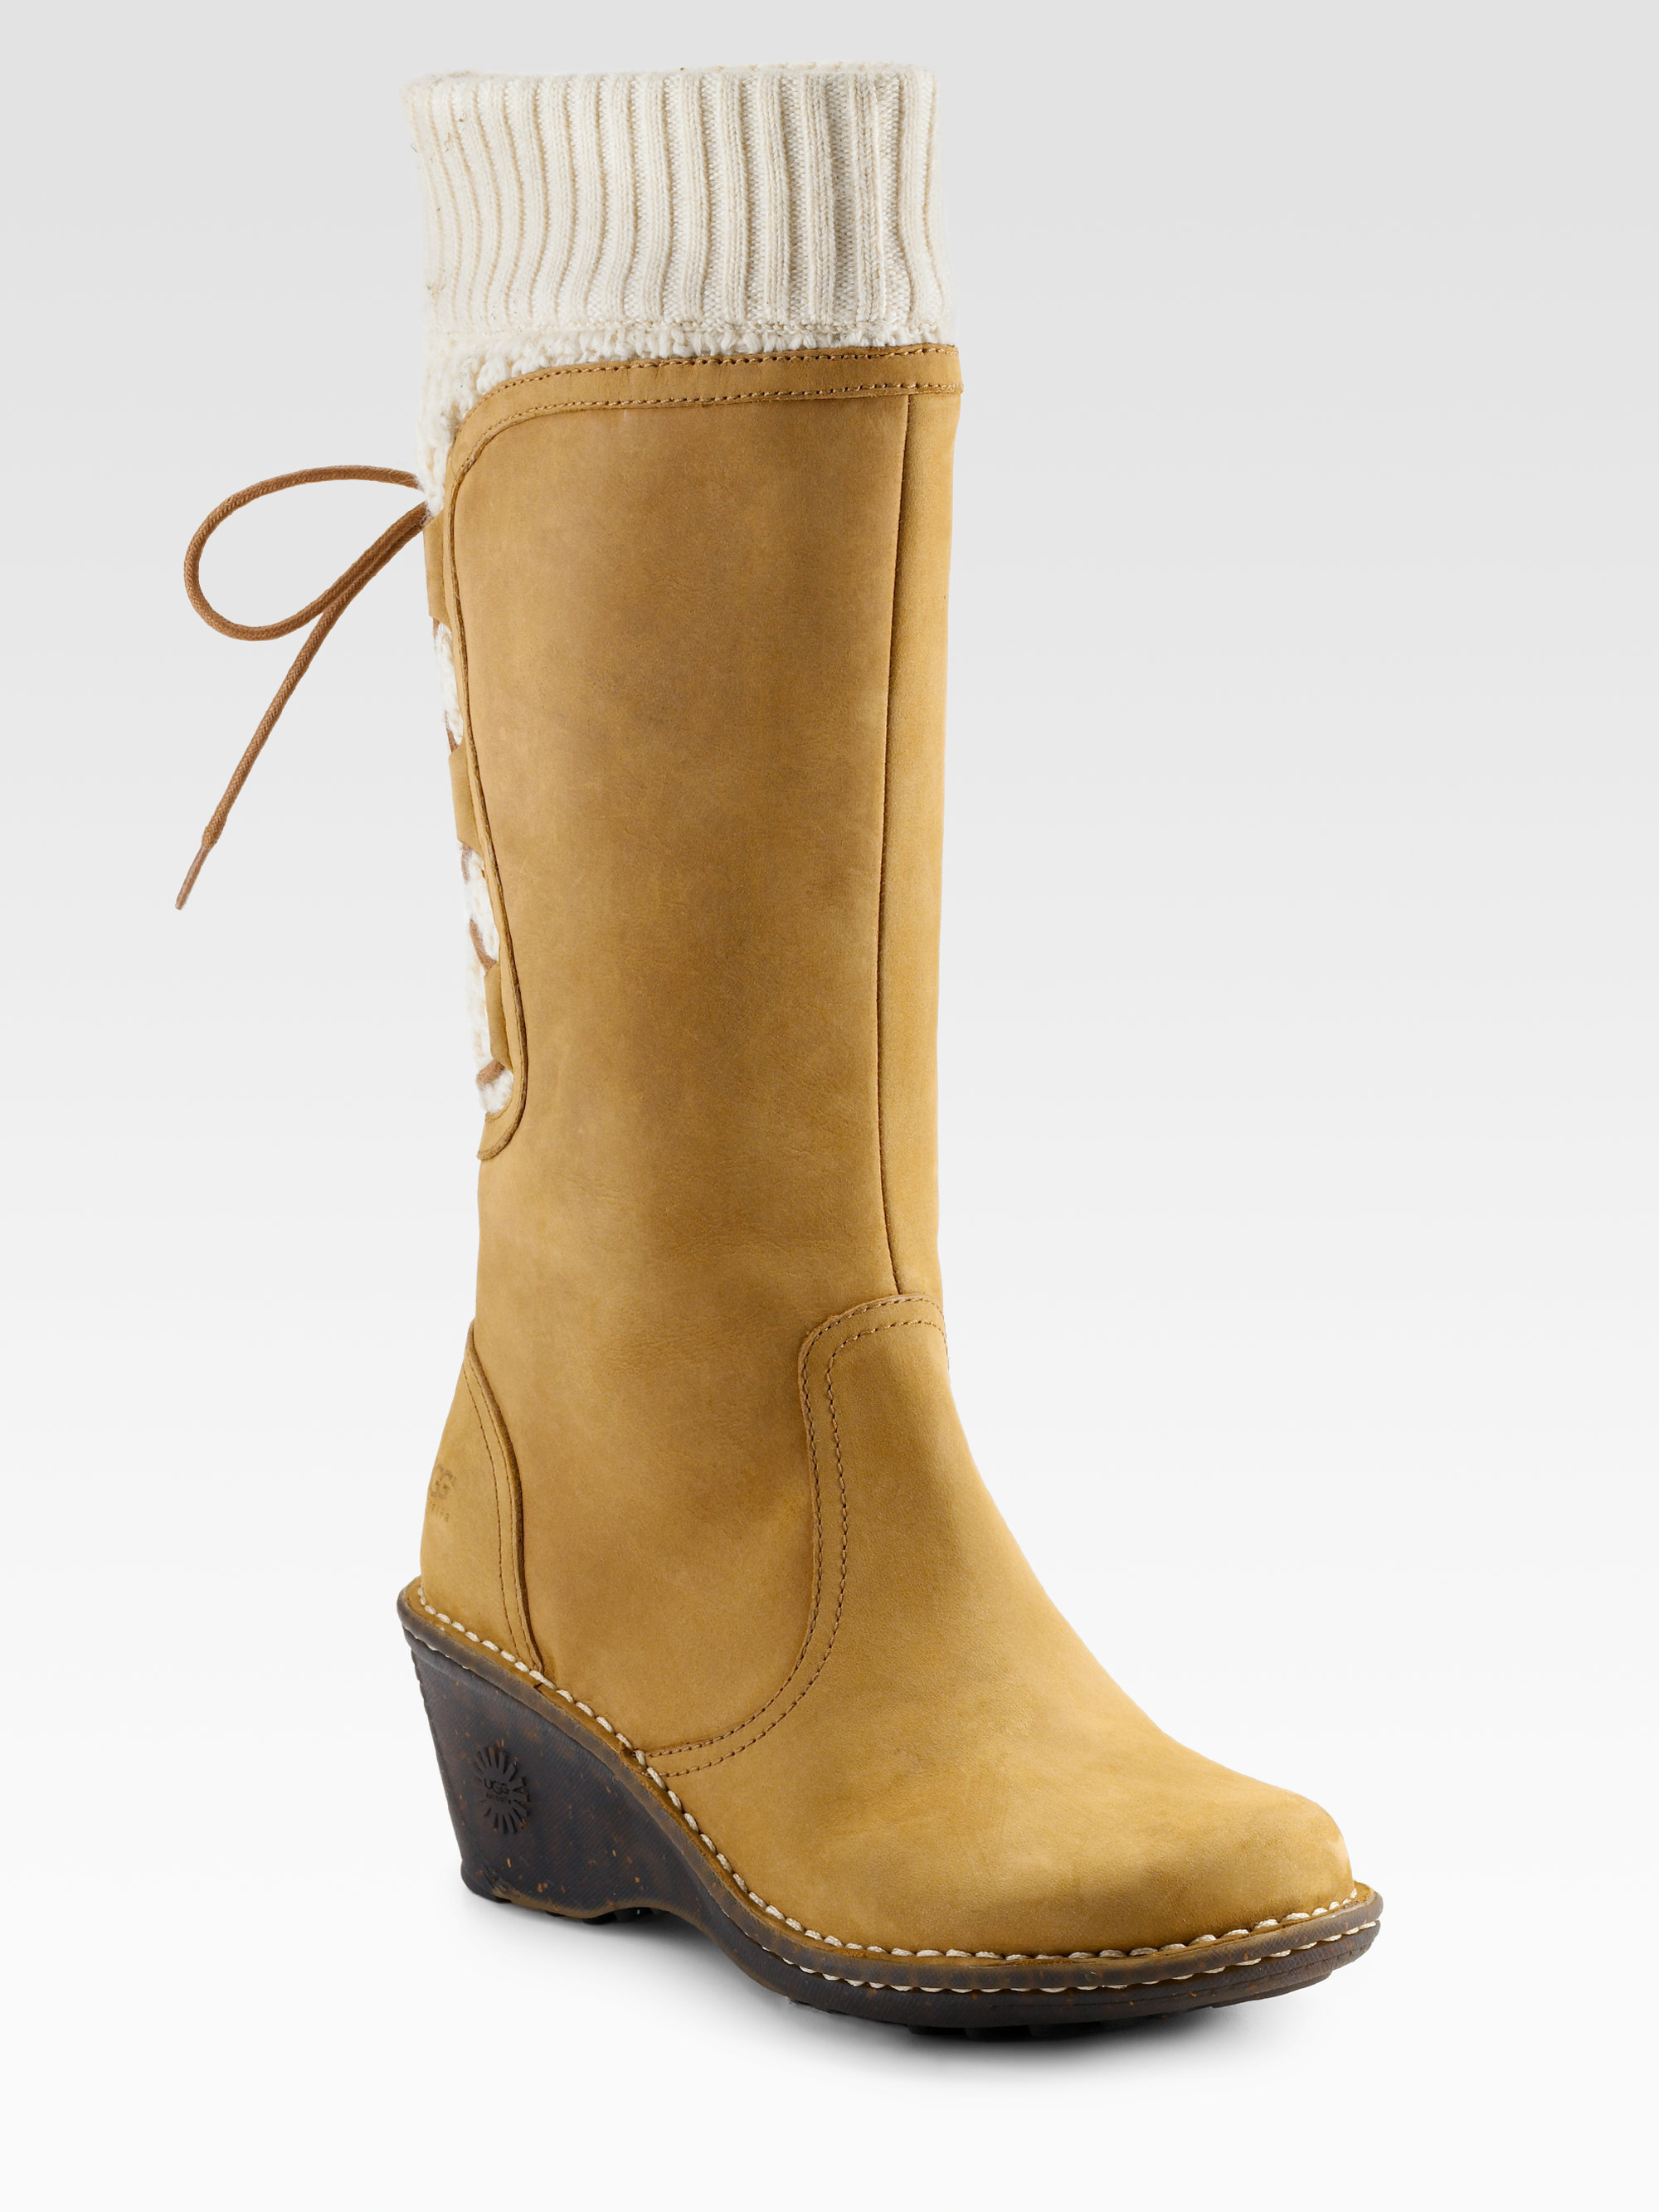 Ugg Skylair Suede Wedge Boots in Brown